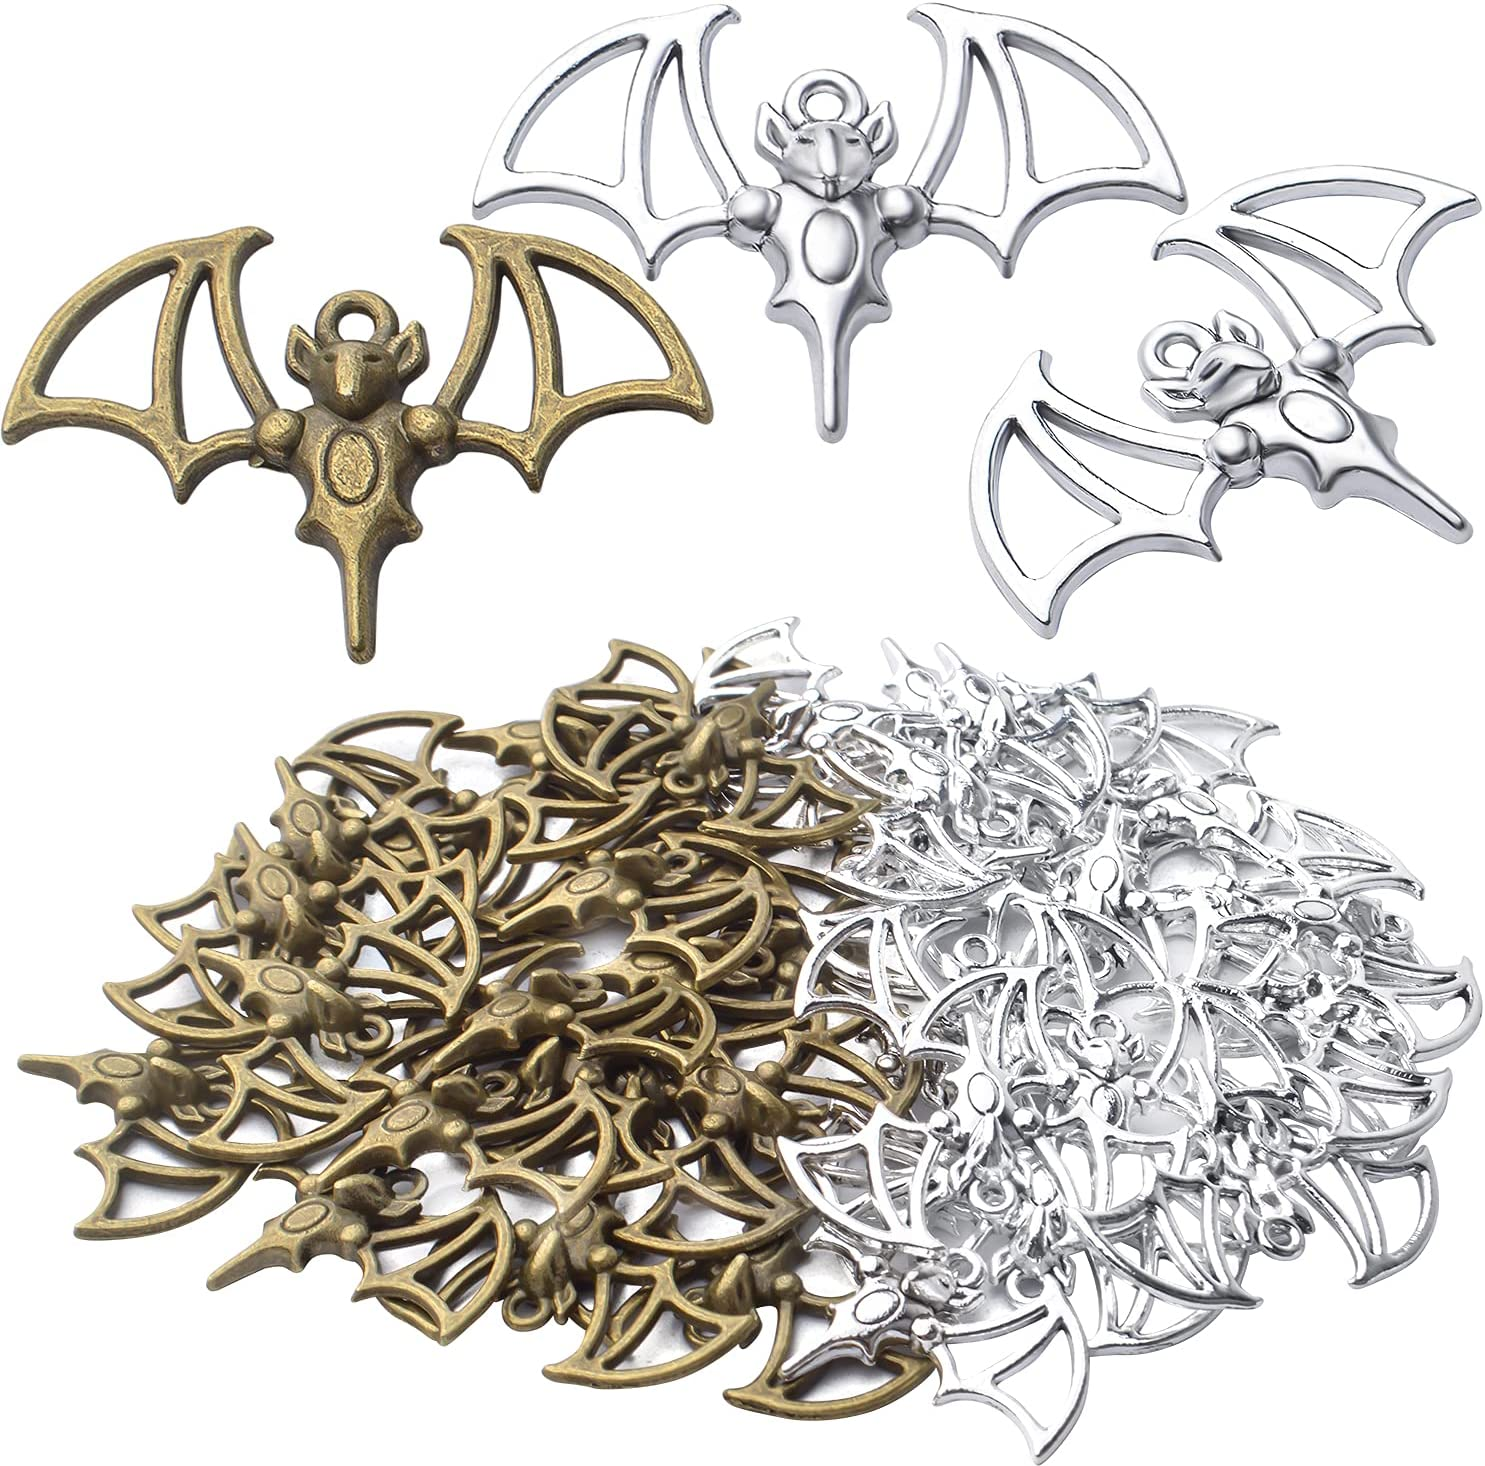 40pcs Bat Pendant Charms Alloy Halloween Flittermouse Flying Vampire Bat Charms Pendants Animal Bead Charms Craft Supplies for DIY Bracelet Jewelry Making Finding,33.1mm×22.5mm